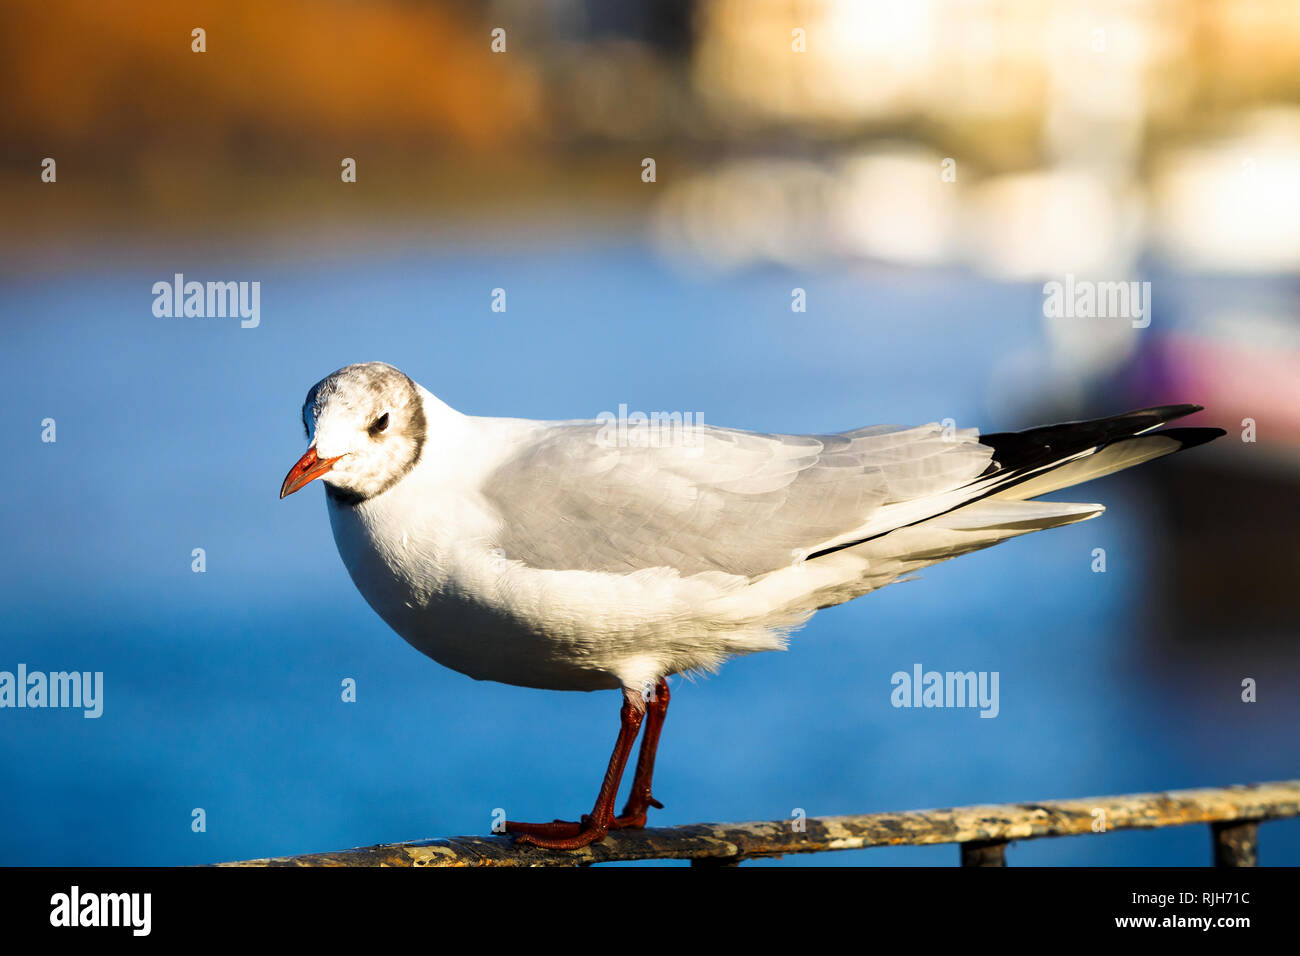 Seagull on a Railing by the River Thames in Wandsworth park - South West London, England - Stock Image